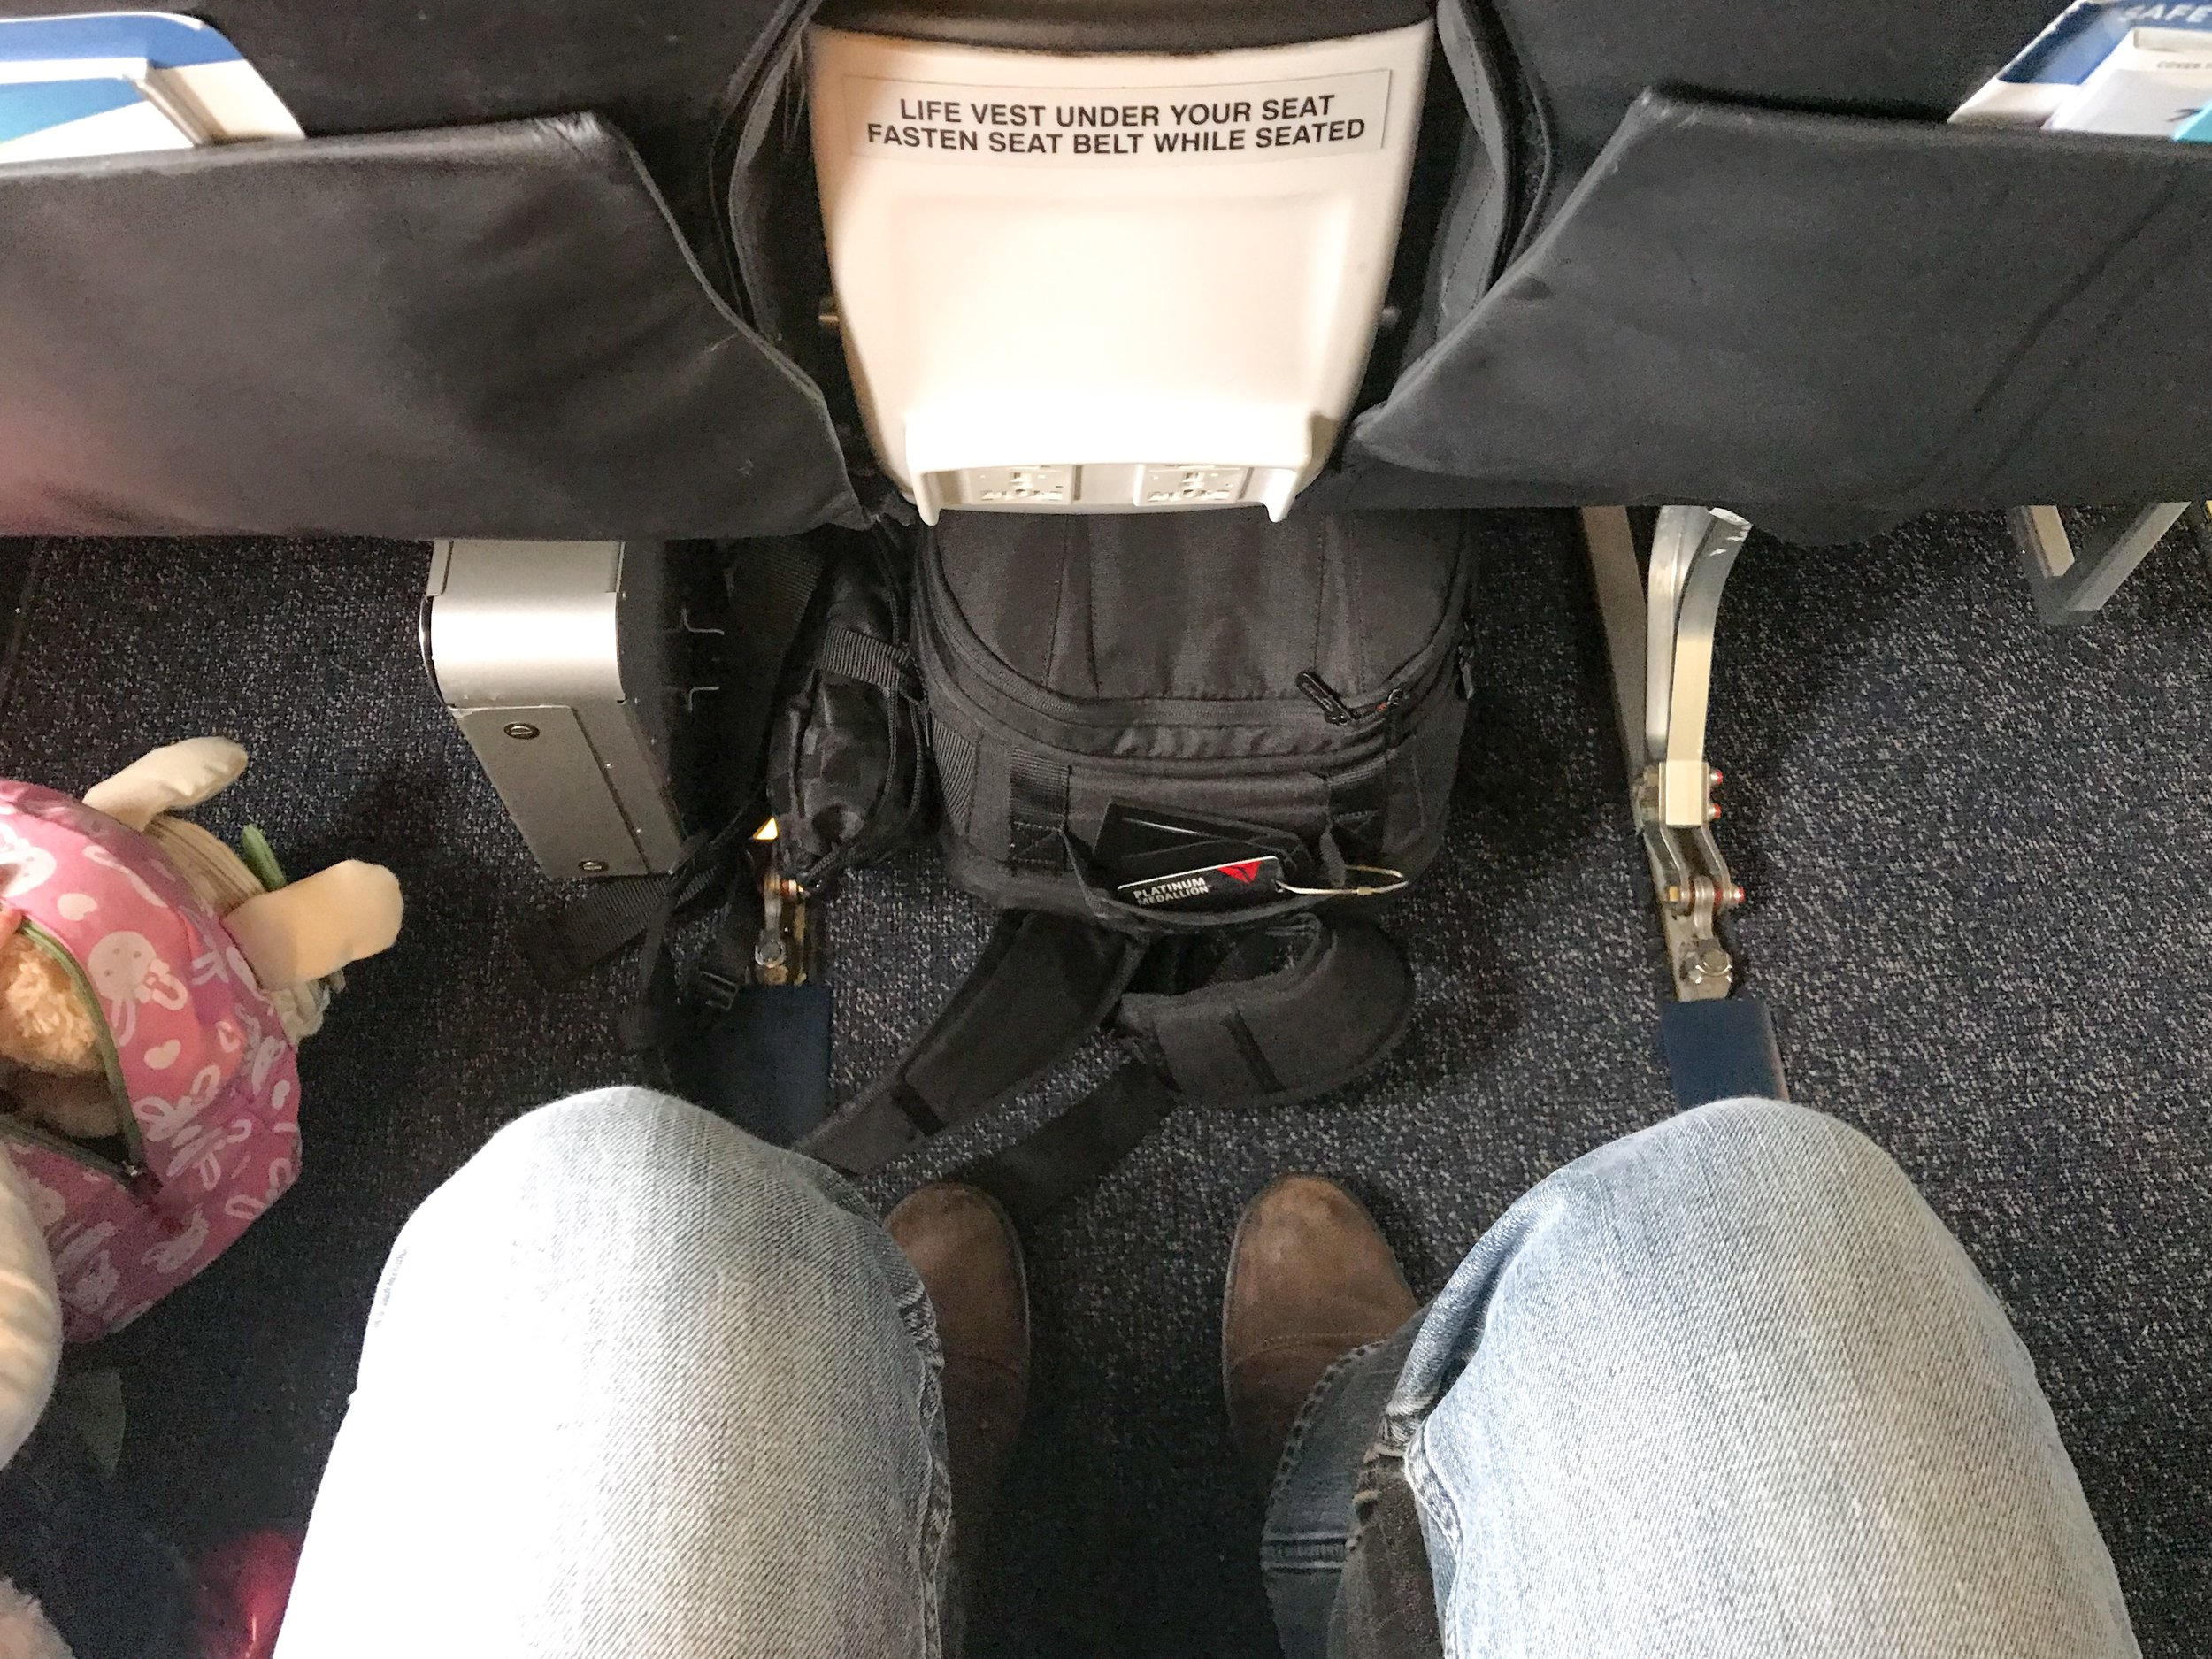 More legroom in Row 6 than any other row on the plane.